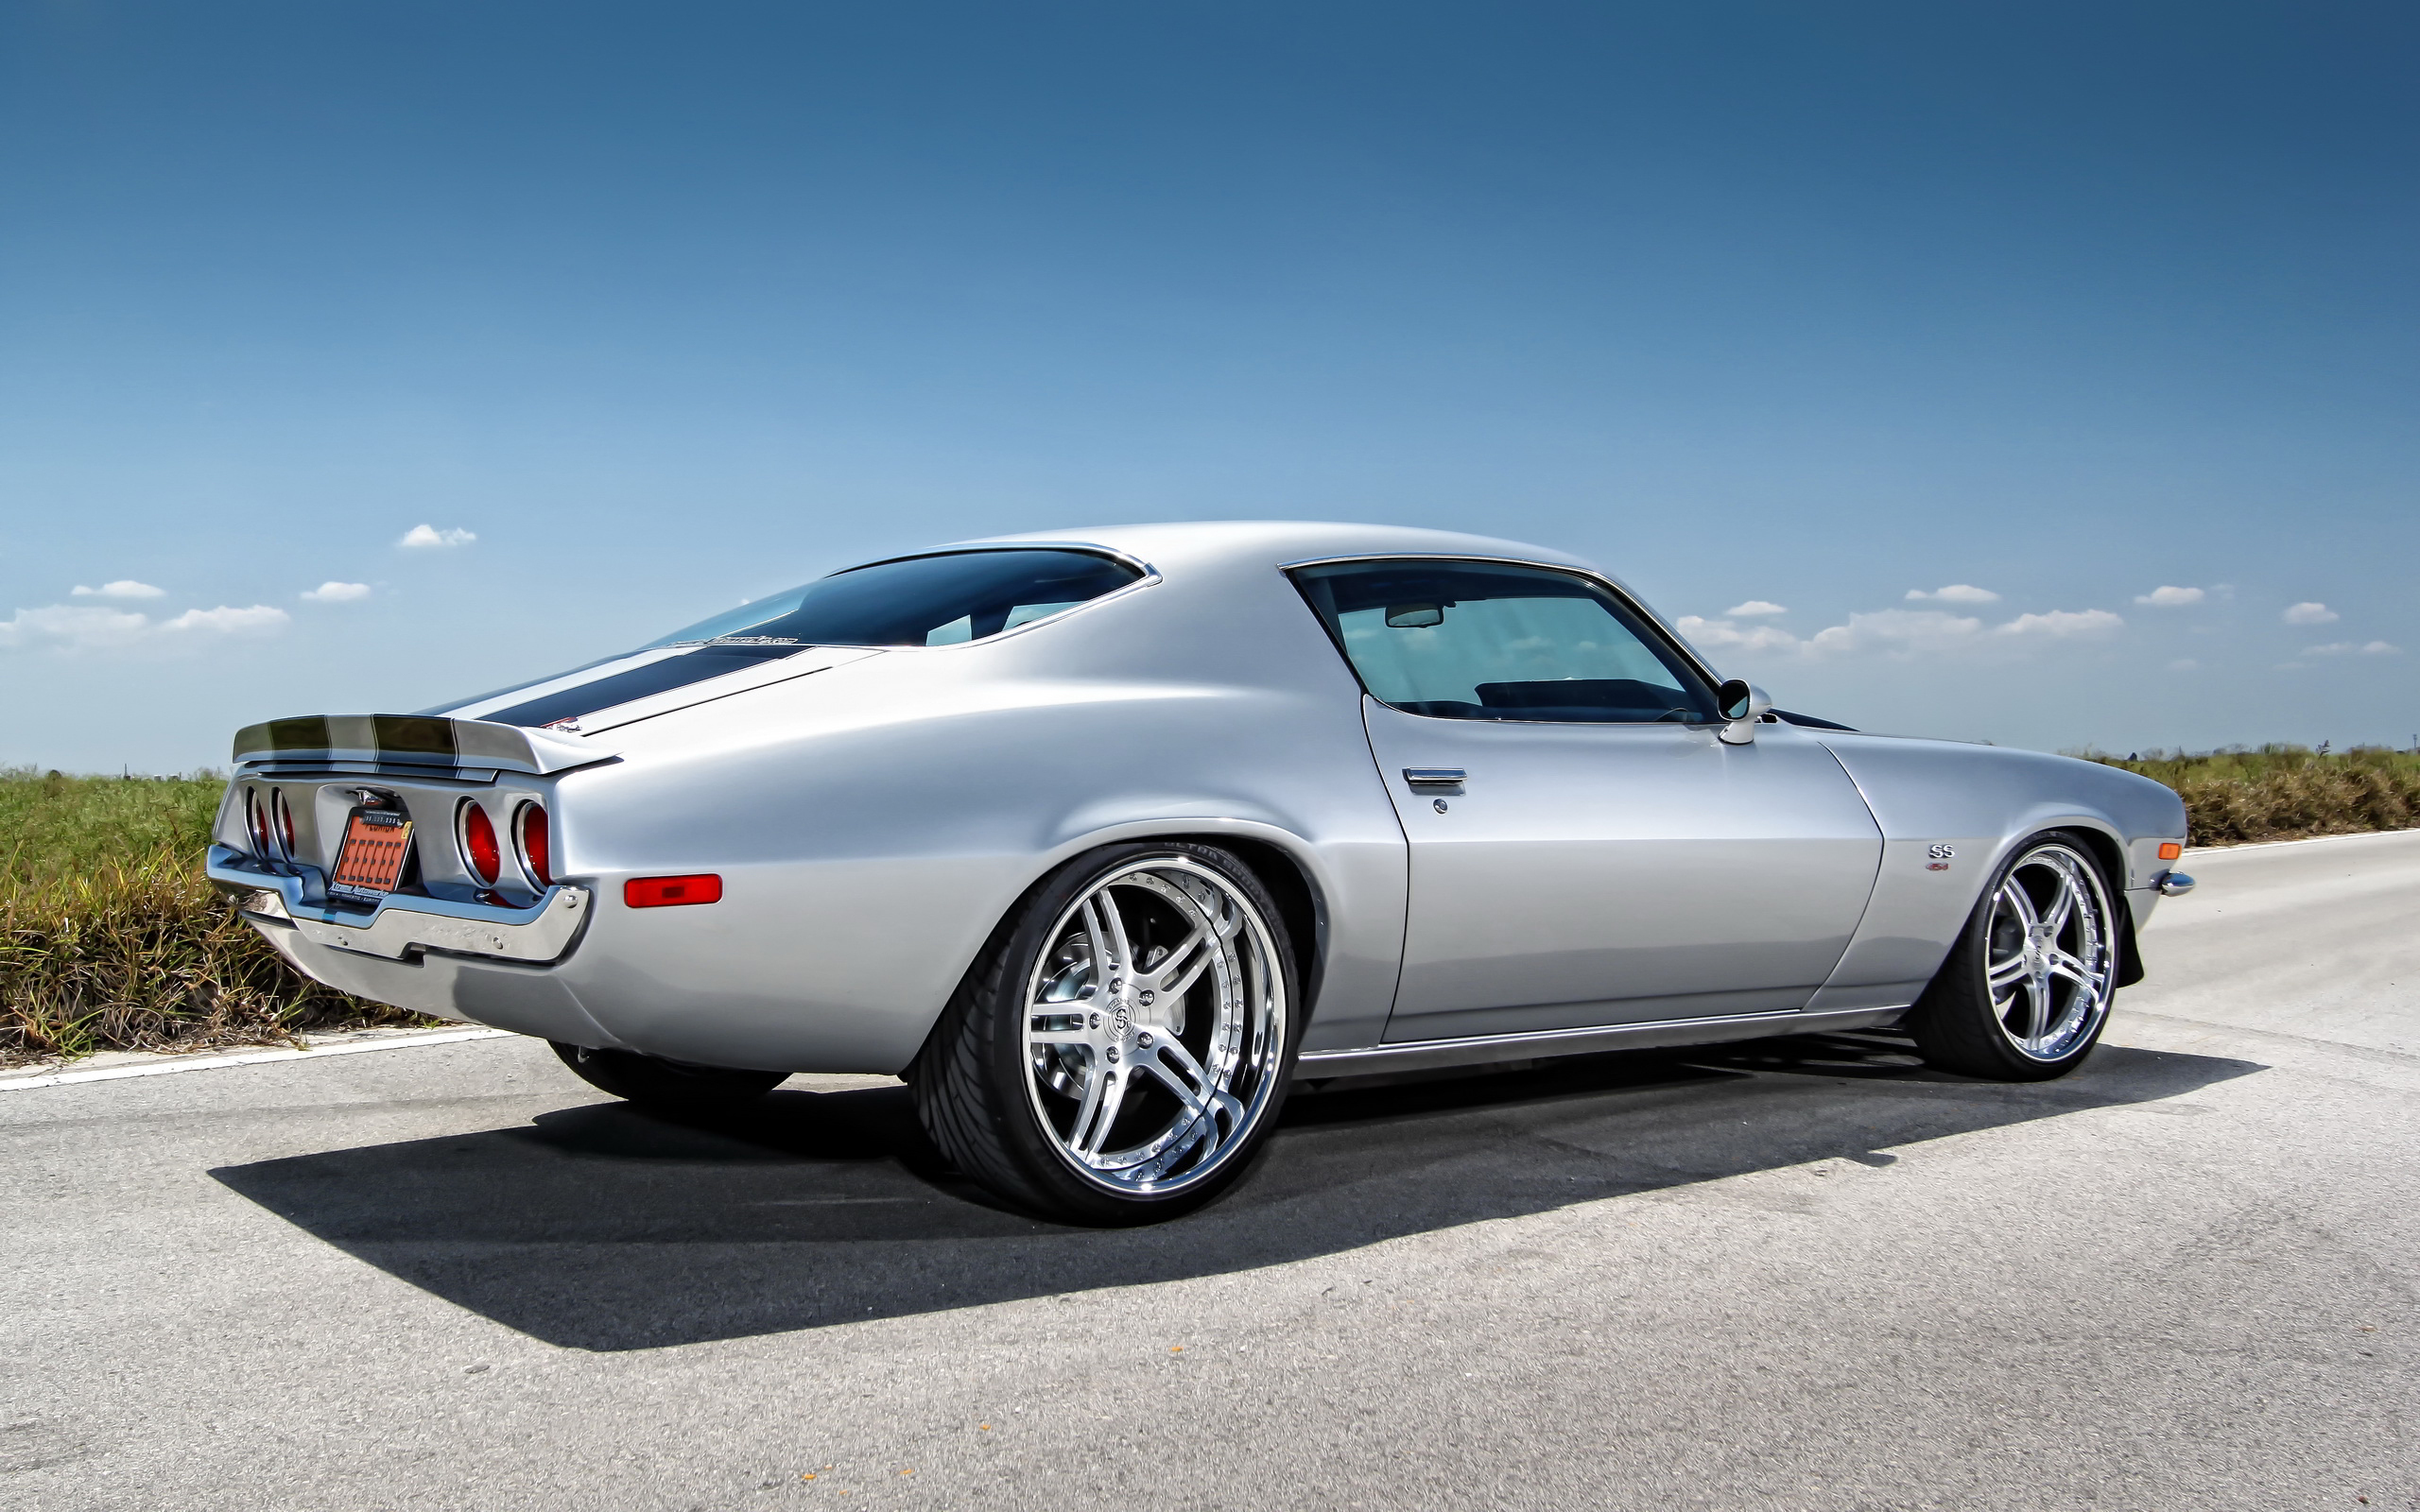 Chevy Camaro Muscle Car Wallpaper 2560x1600 16478